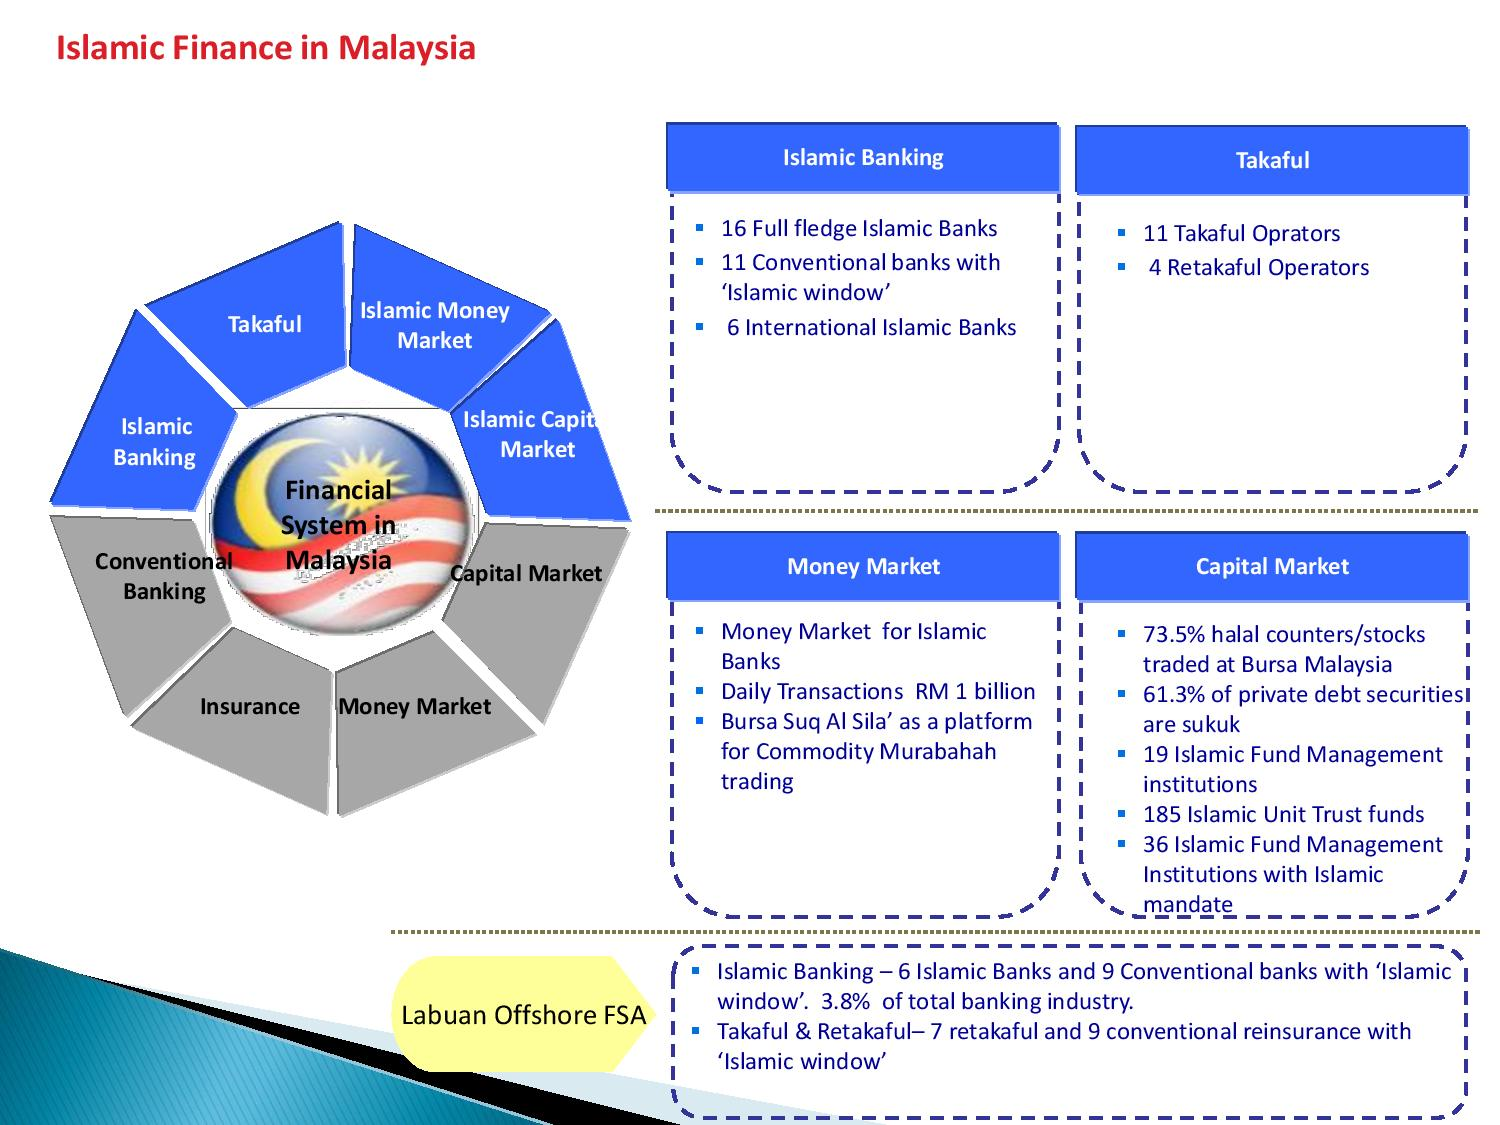 The-demand-for-Islamic-finance-and-Malaysian-experience-30032015-CALICUT-KERALA-page-002